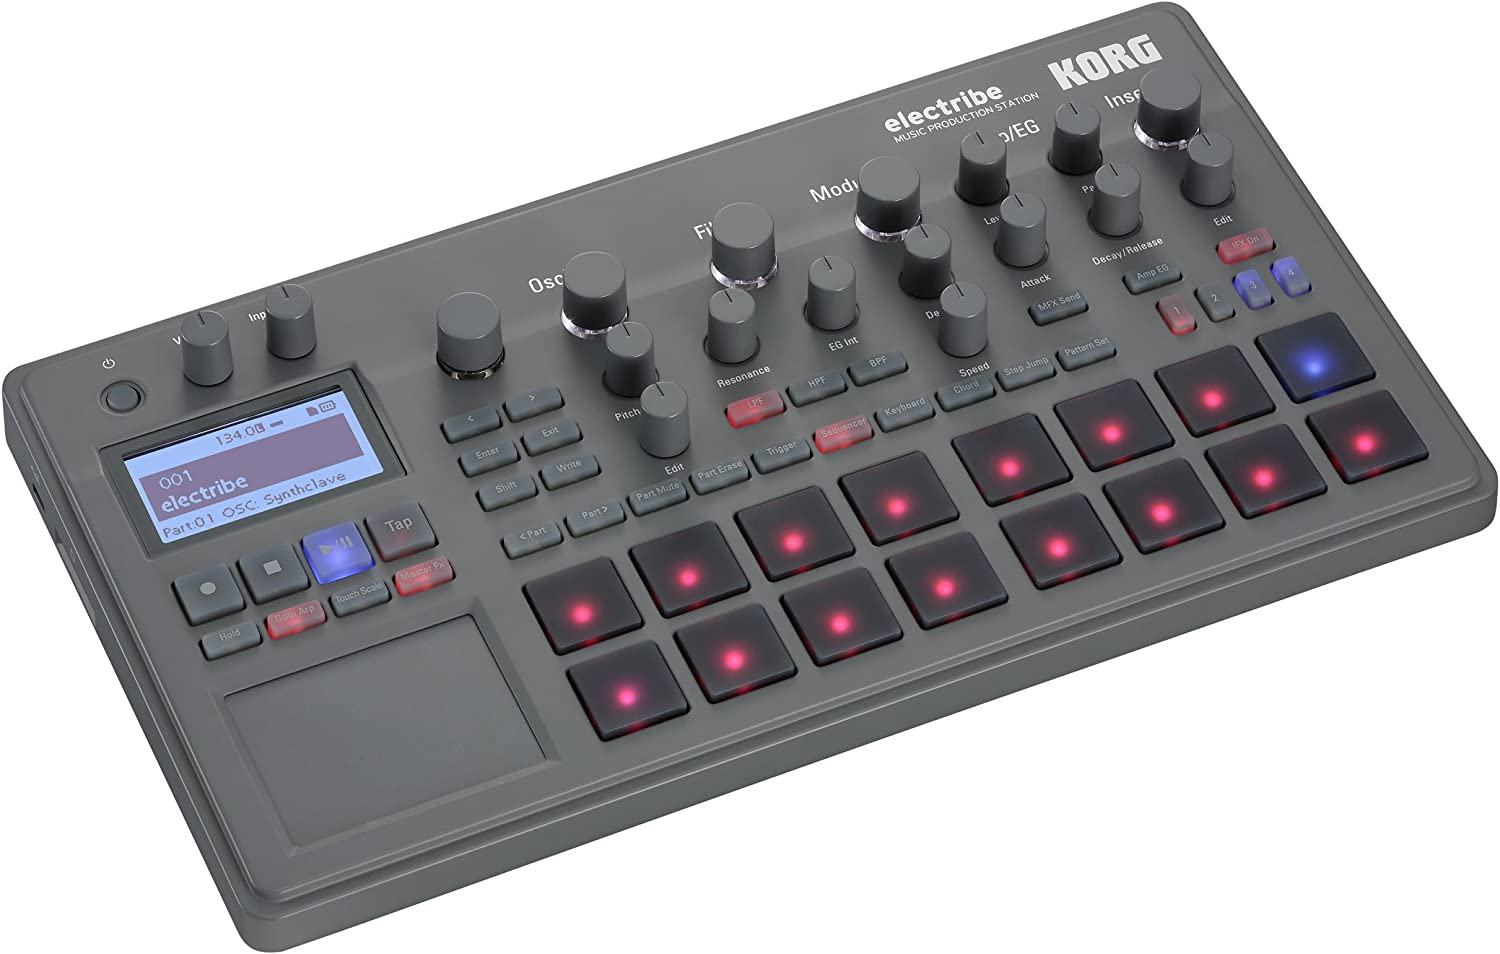 Korg ELECTRIBE Synth Based Production Station - Best for live performances